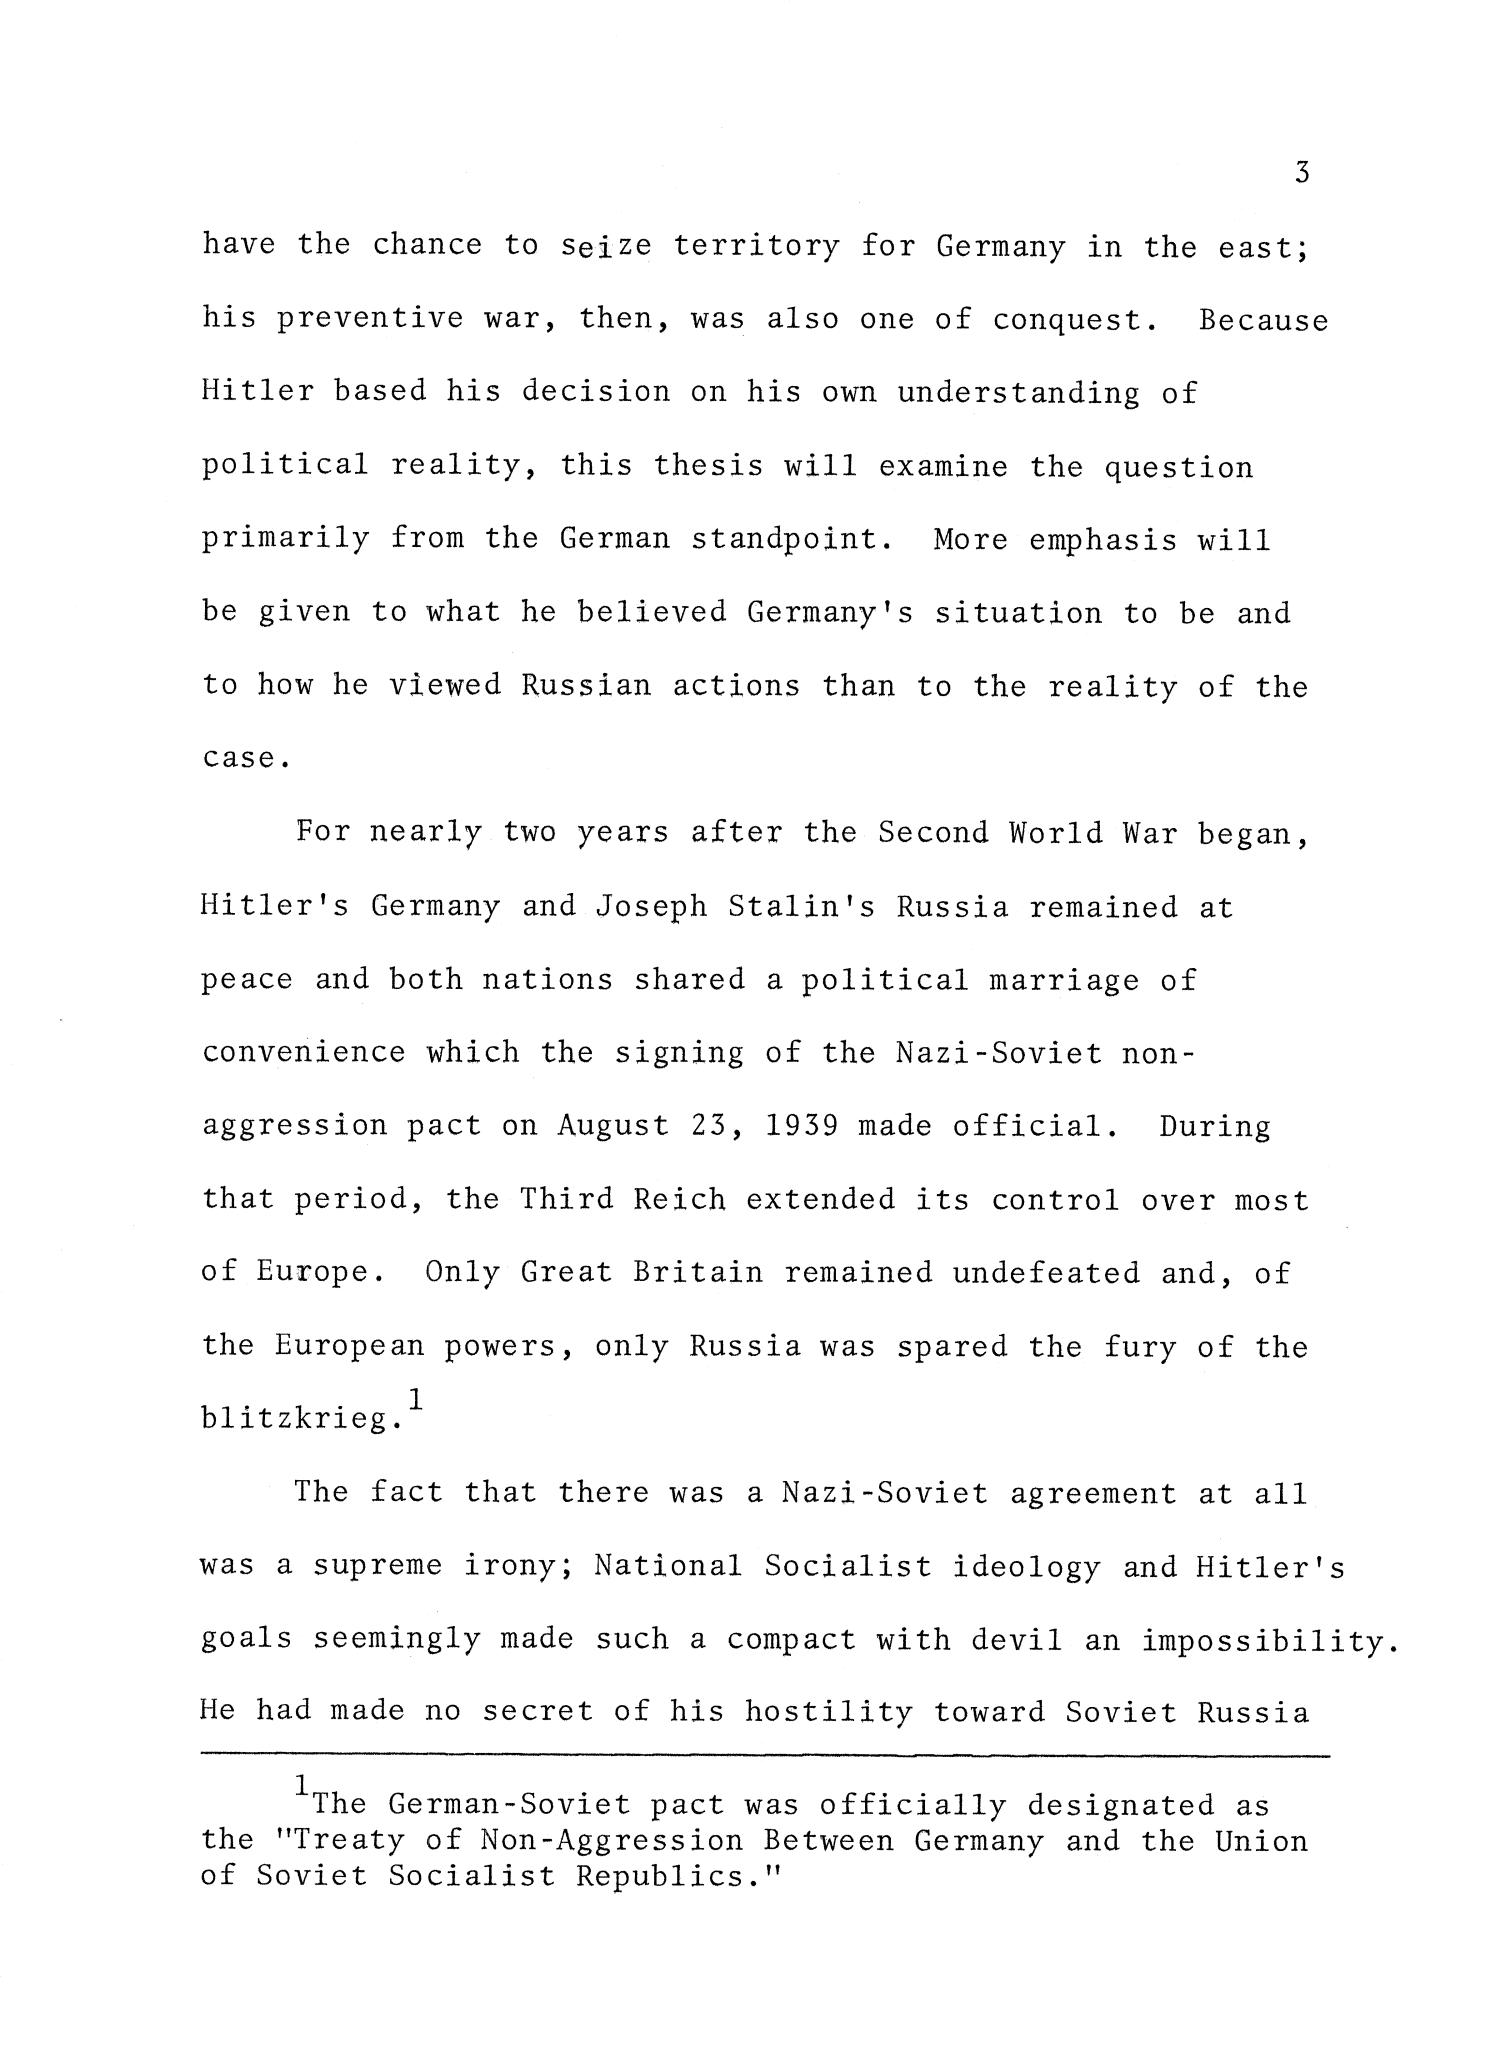 Adolf Hitler's Decision to Invade the Soviet Union - Page 3